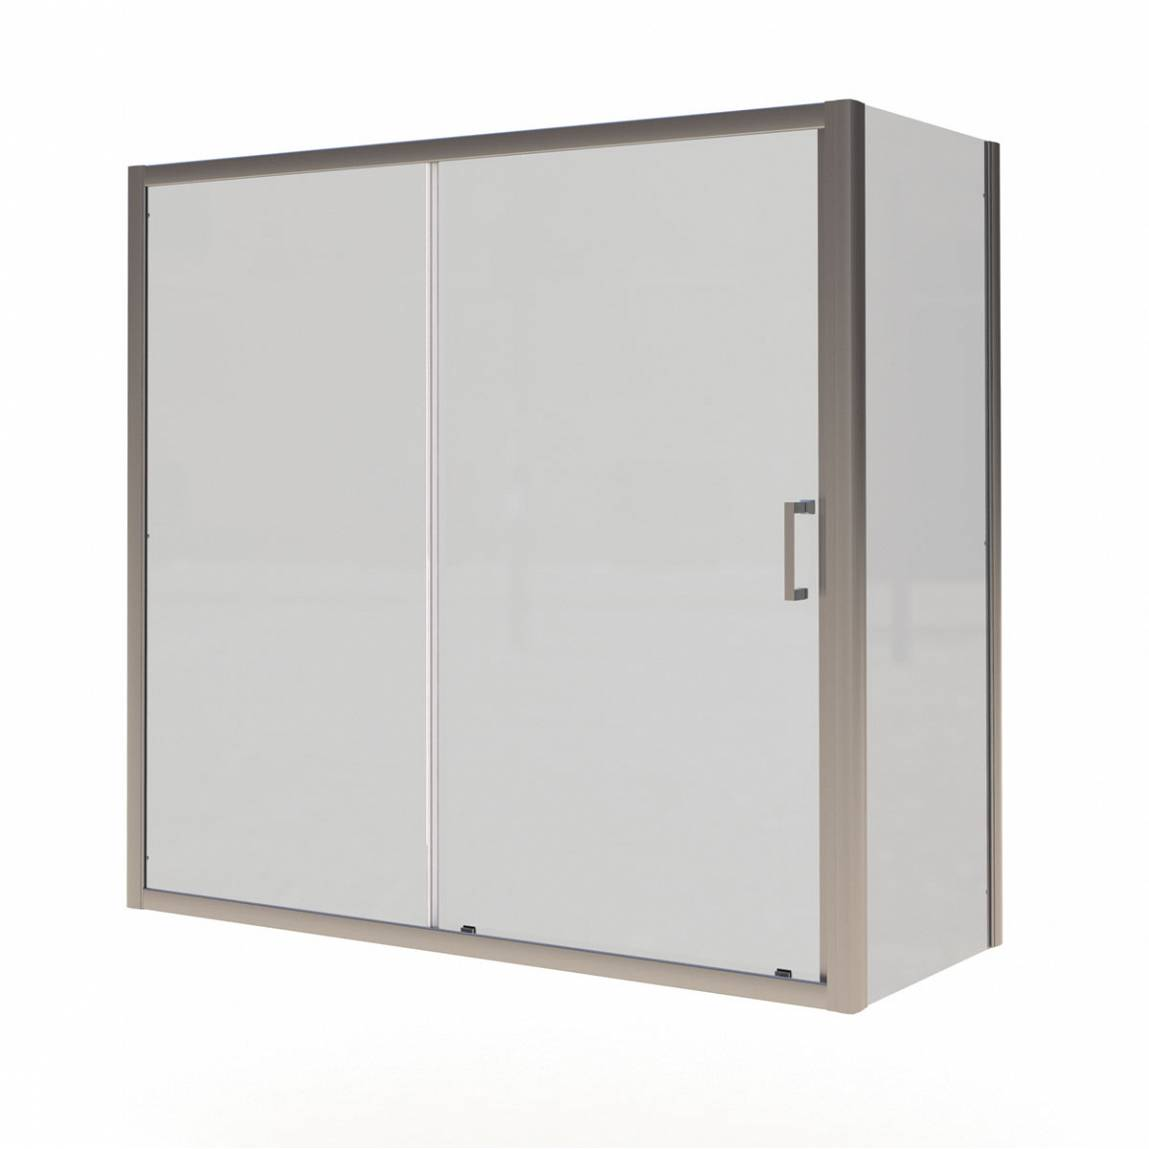 Image of Overbath Sliding Enclosure 1700 x 750 Special Offer